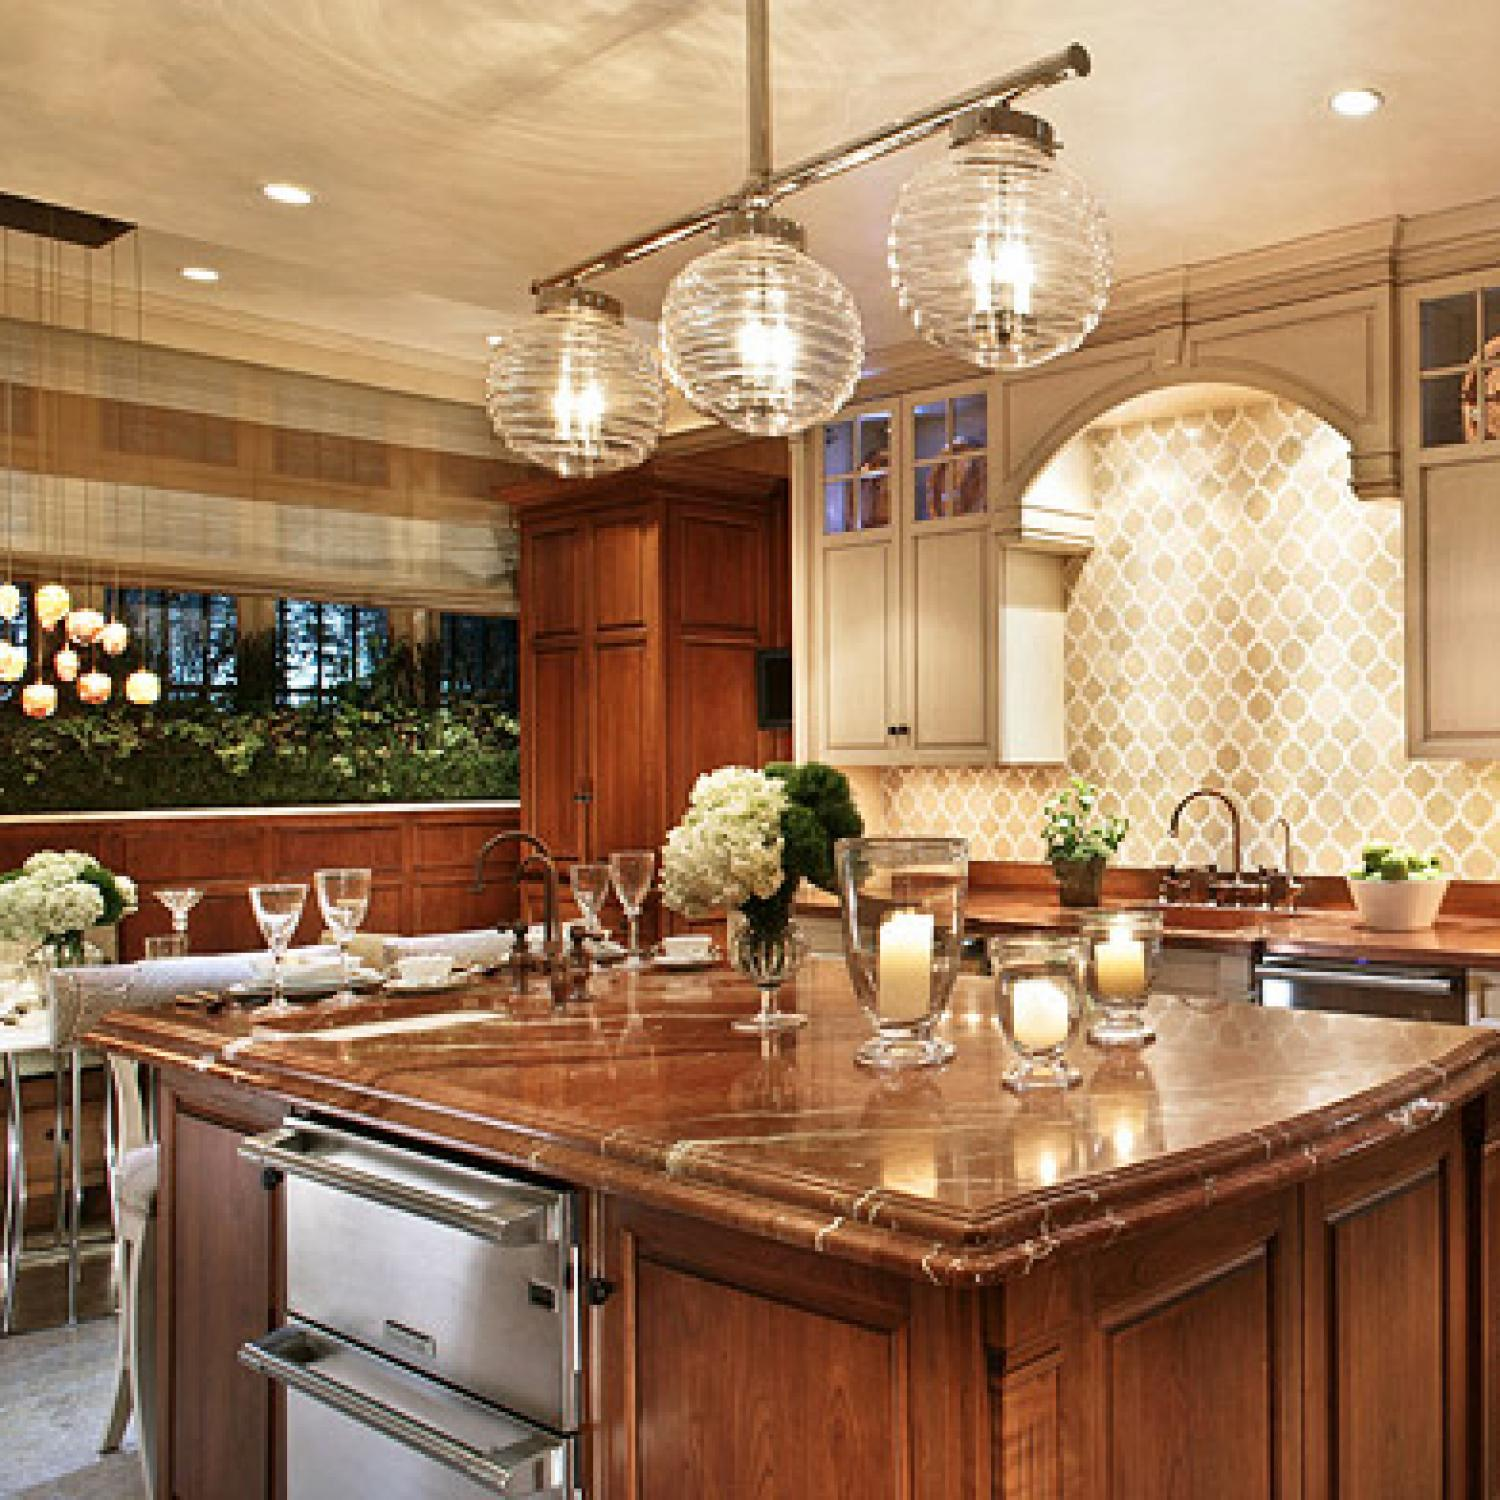 Decoration Design: Welcoming, Intimate Showhouse Kitchen